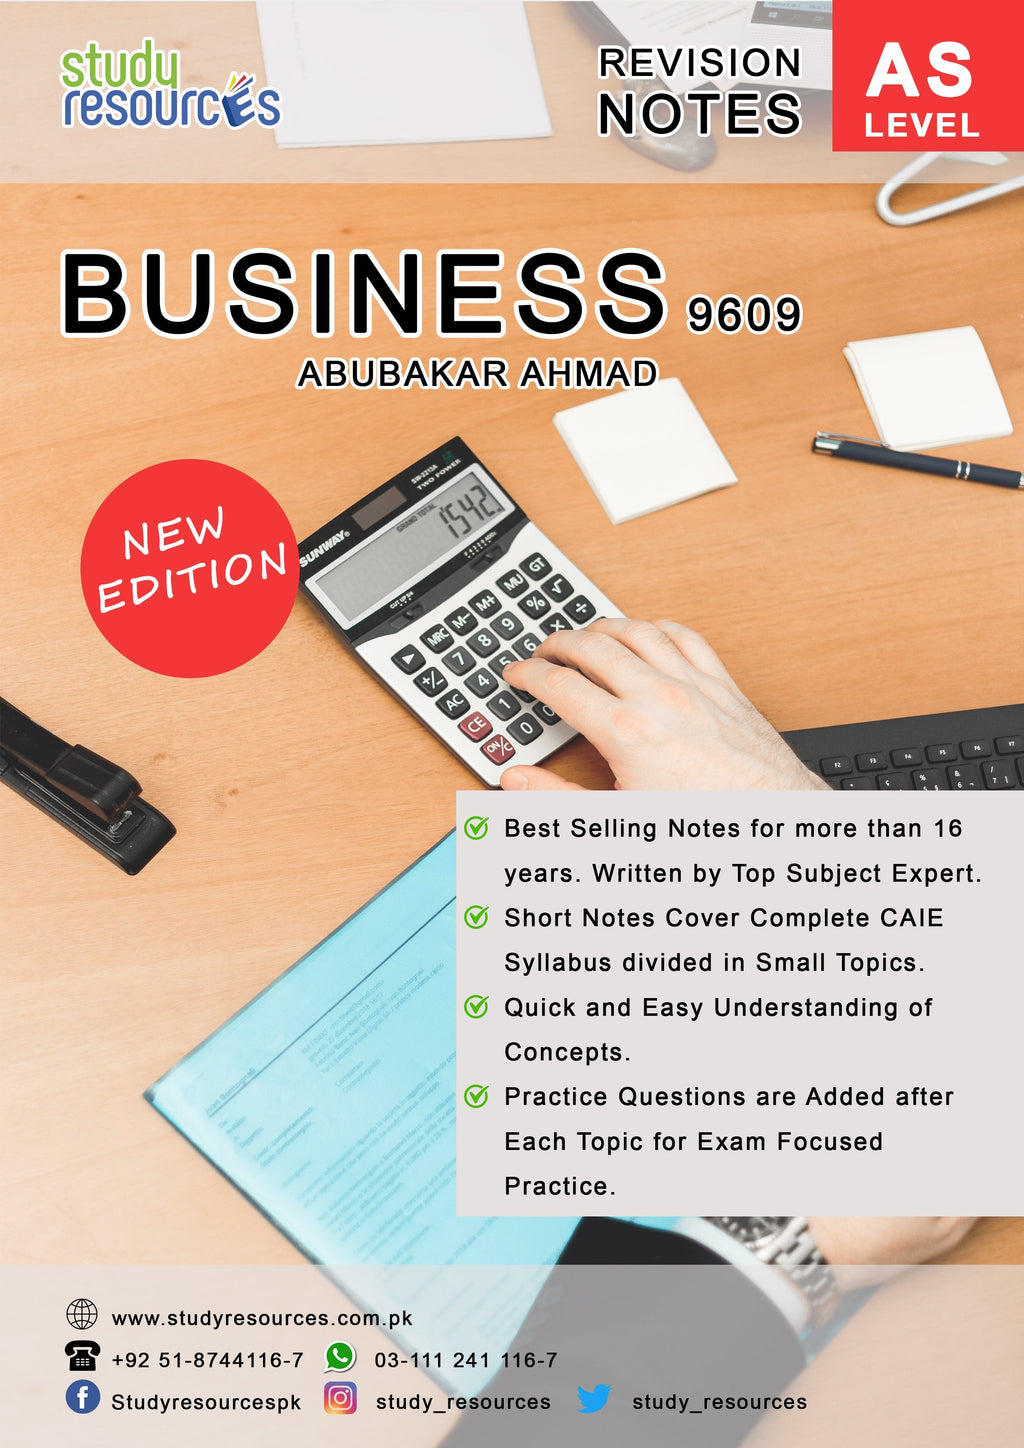 Cambridge AS-Level Business (9609) Revision Guide by Sir. Abubakar Ahmad.